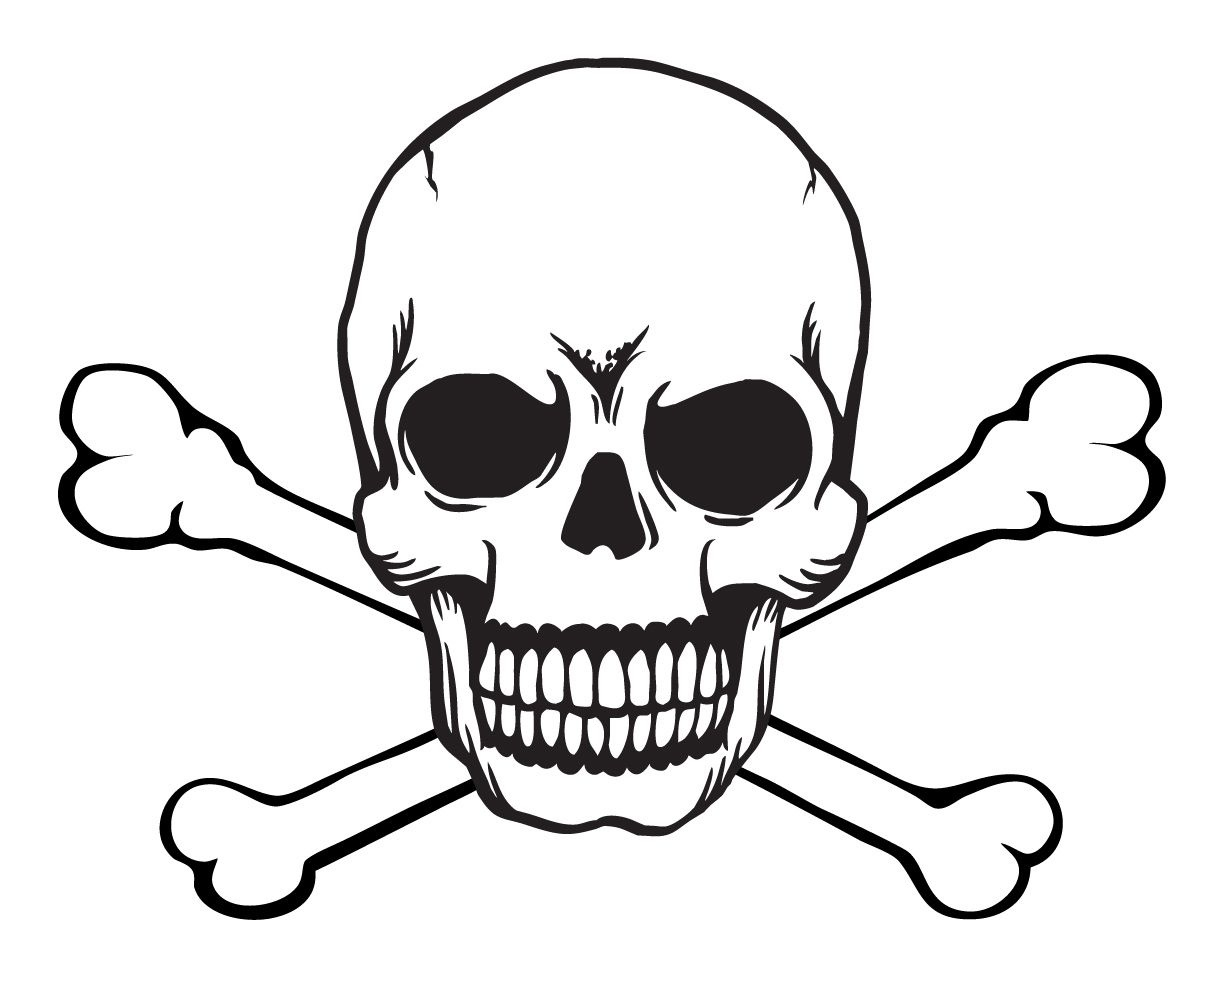 Download ! Cs Games , Mods , Patches , Tools , Add-Ons , Hacks - Skull Stencils Free Printable